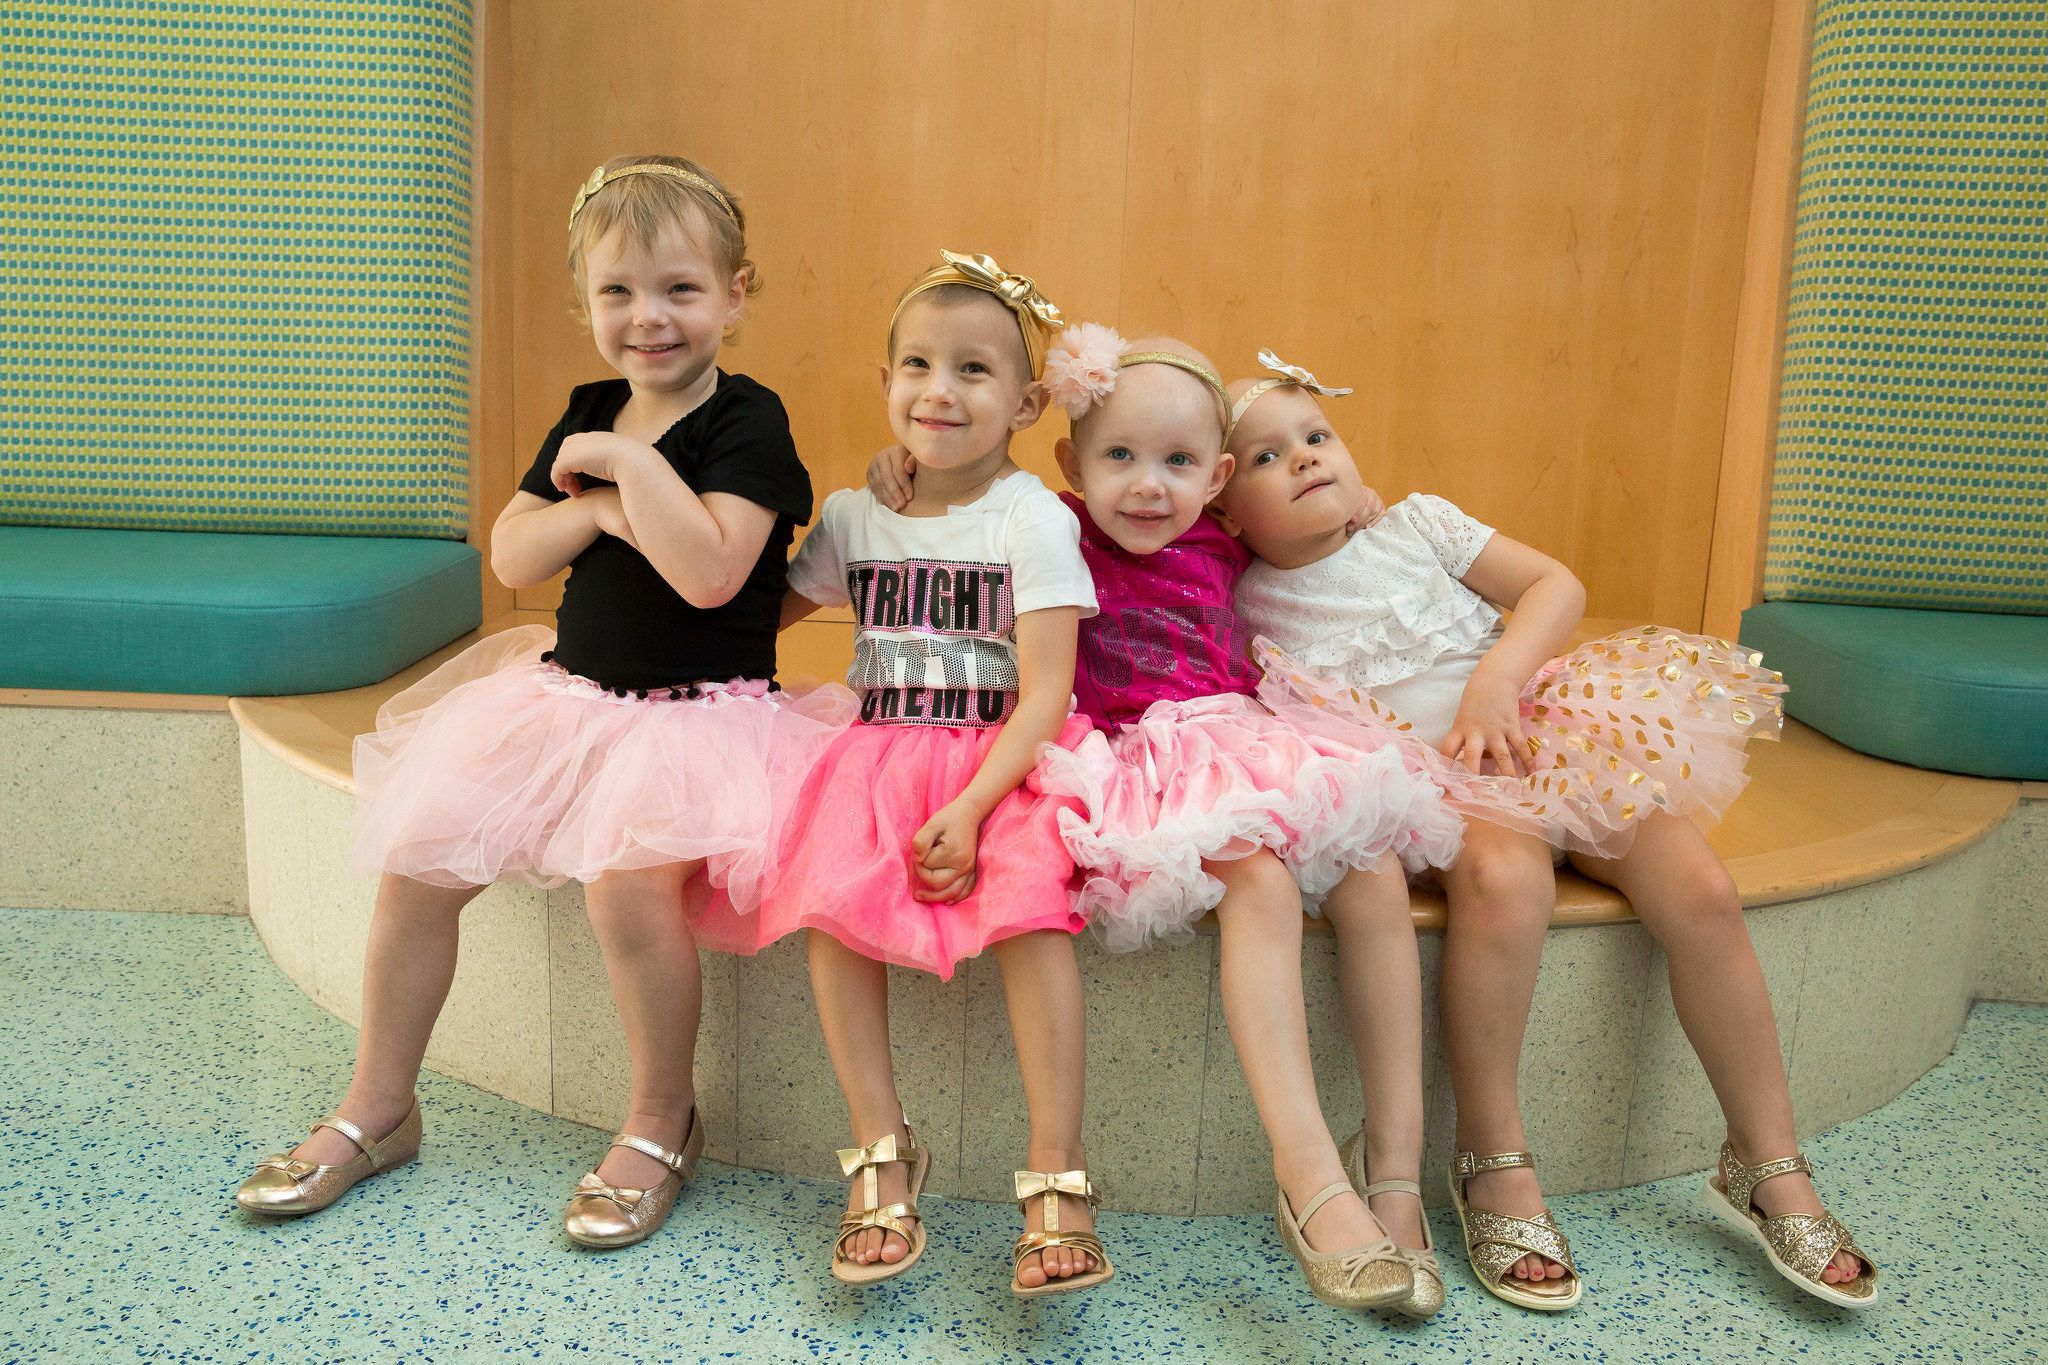 These Four Girls Who All Beat Cancer Reunite At The Hospital Where They Became